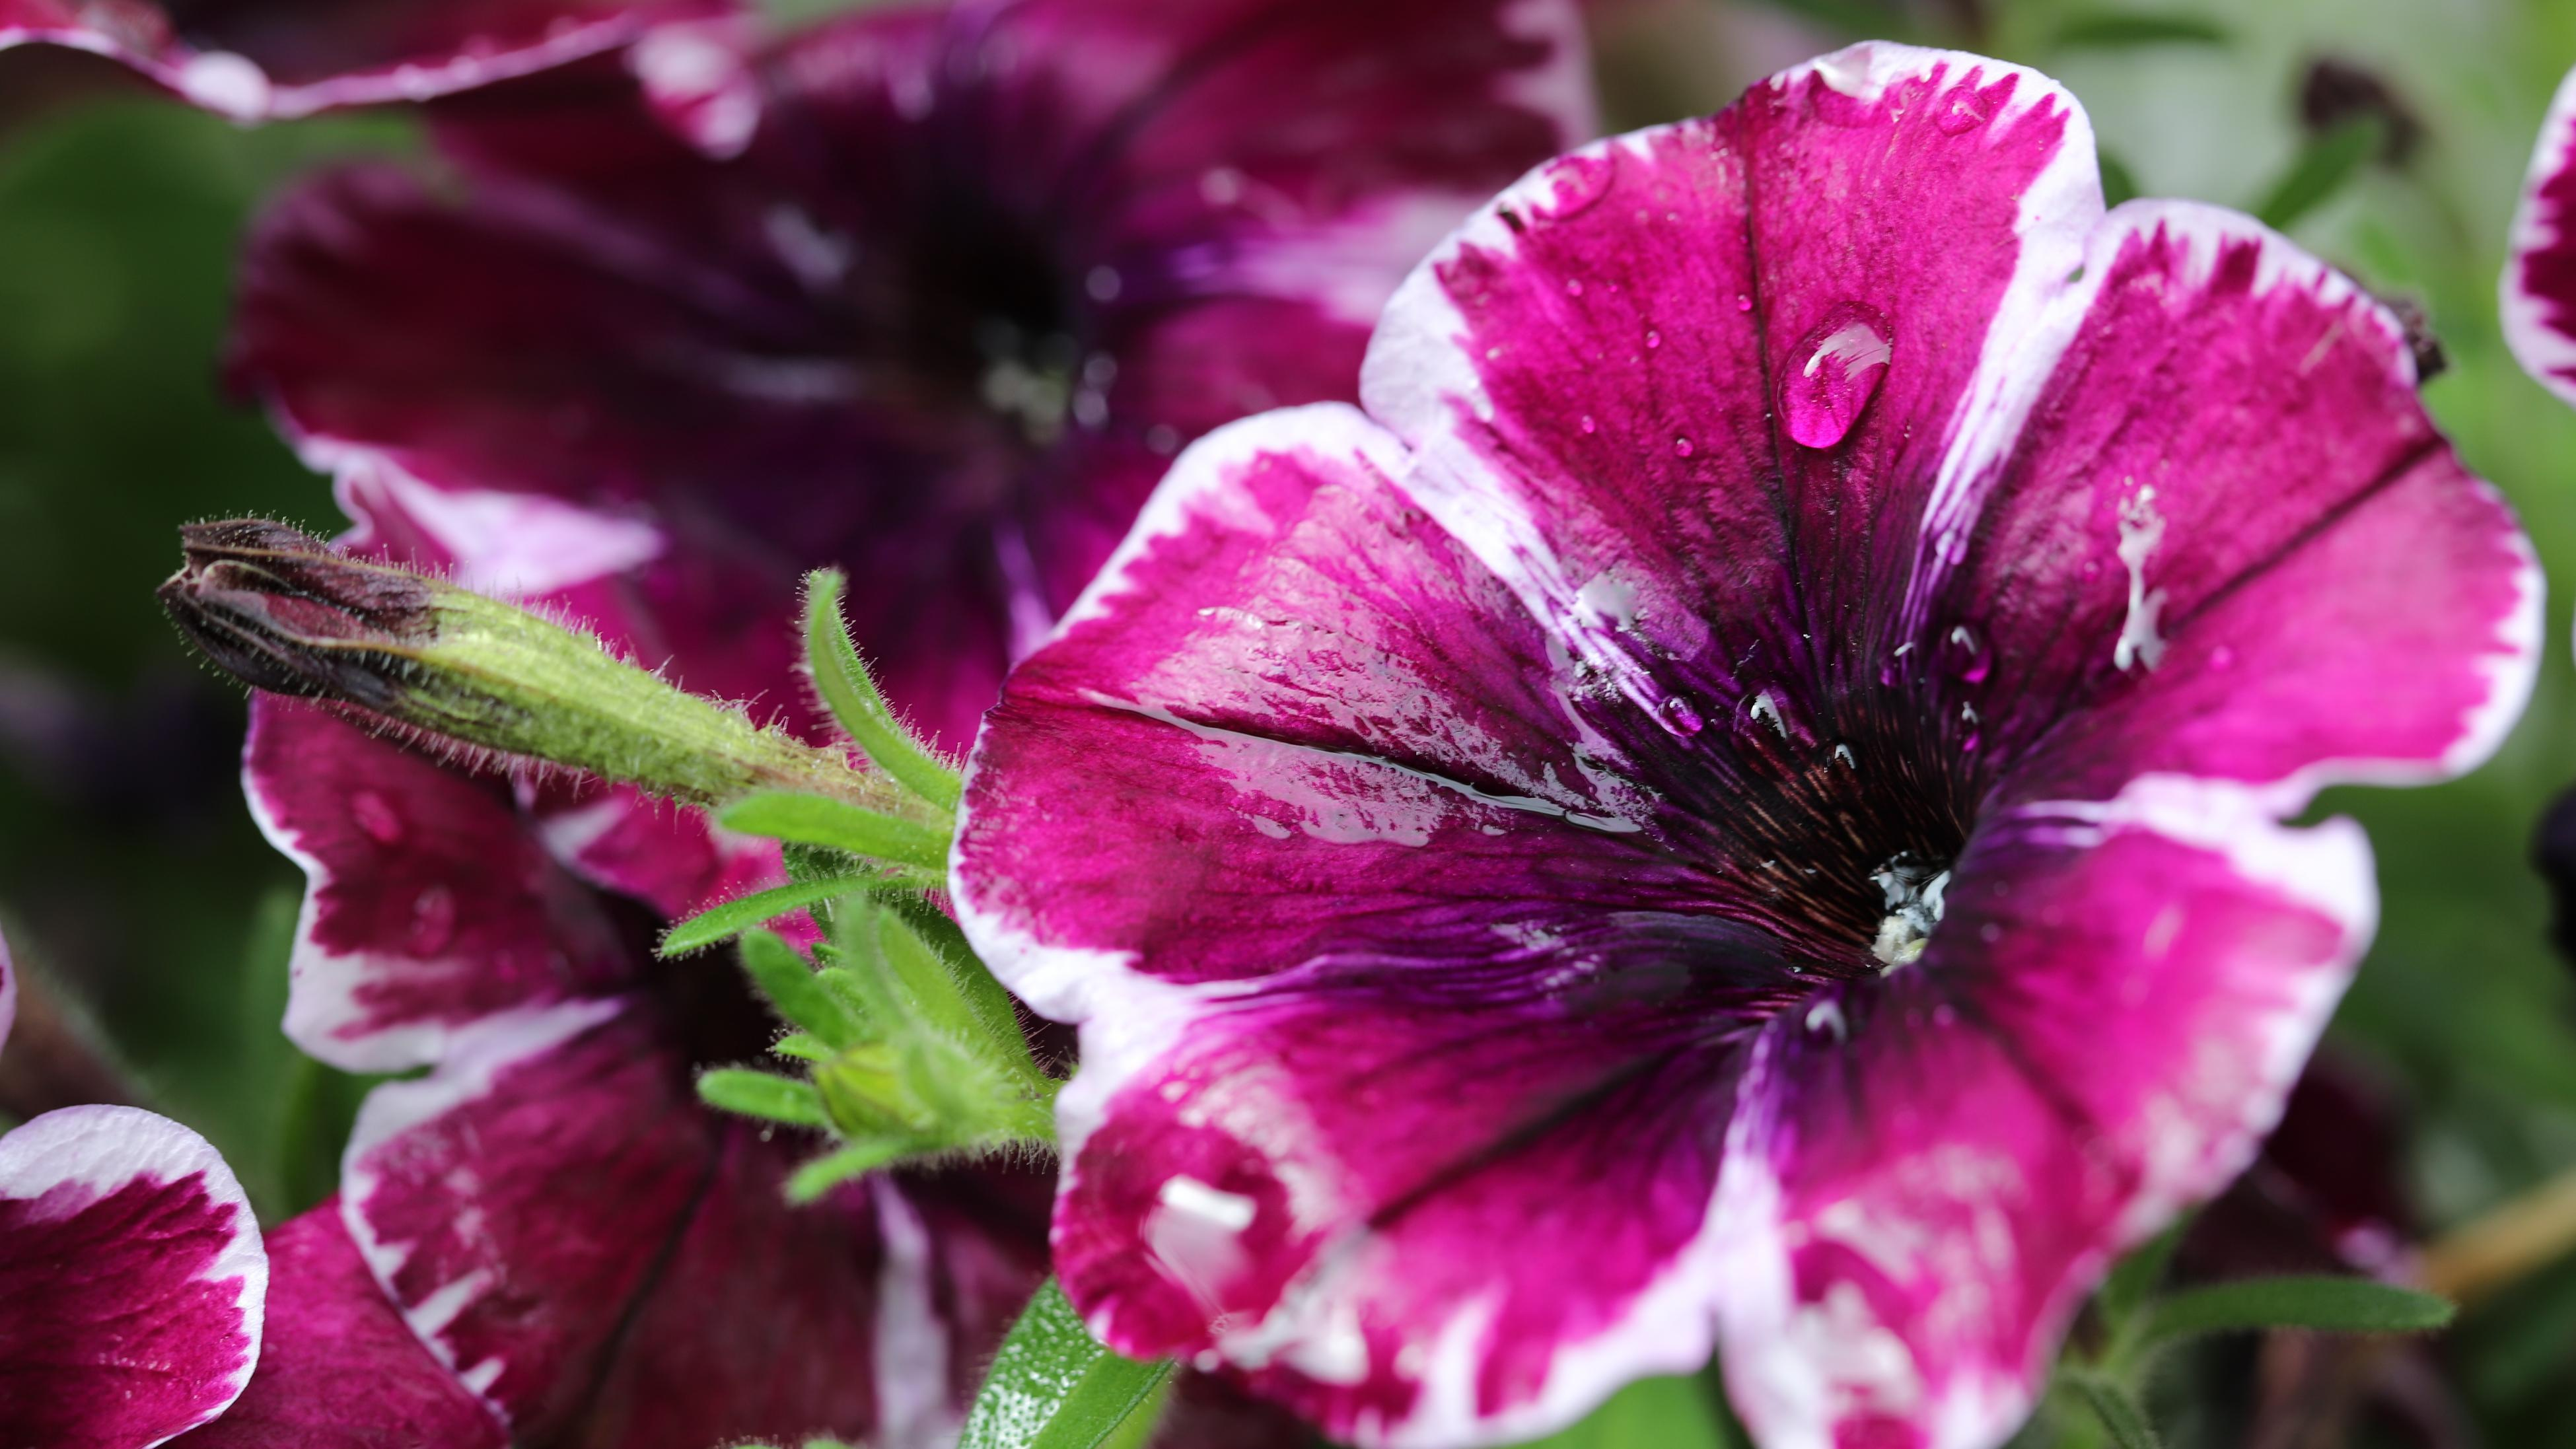 A purple and white petunia flower in a garden